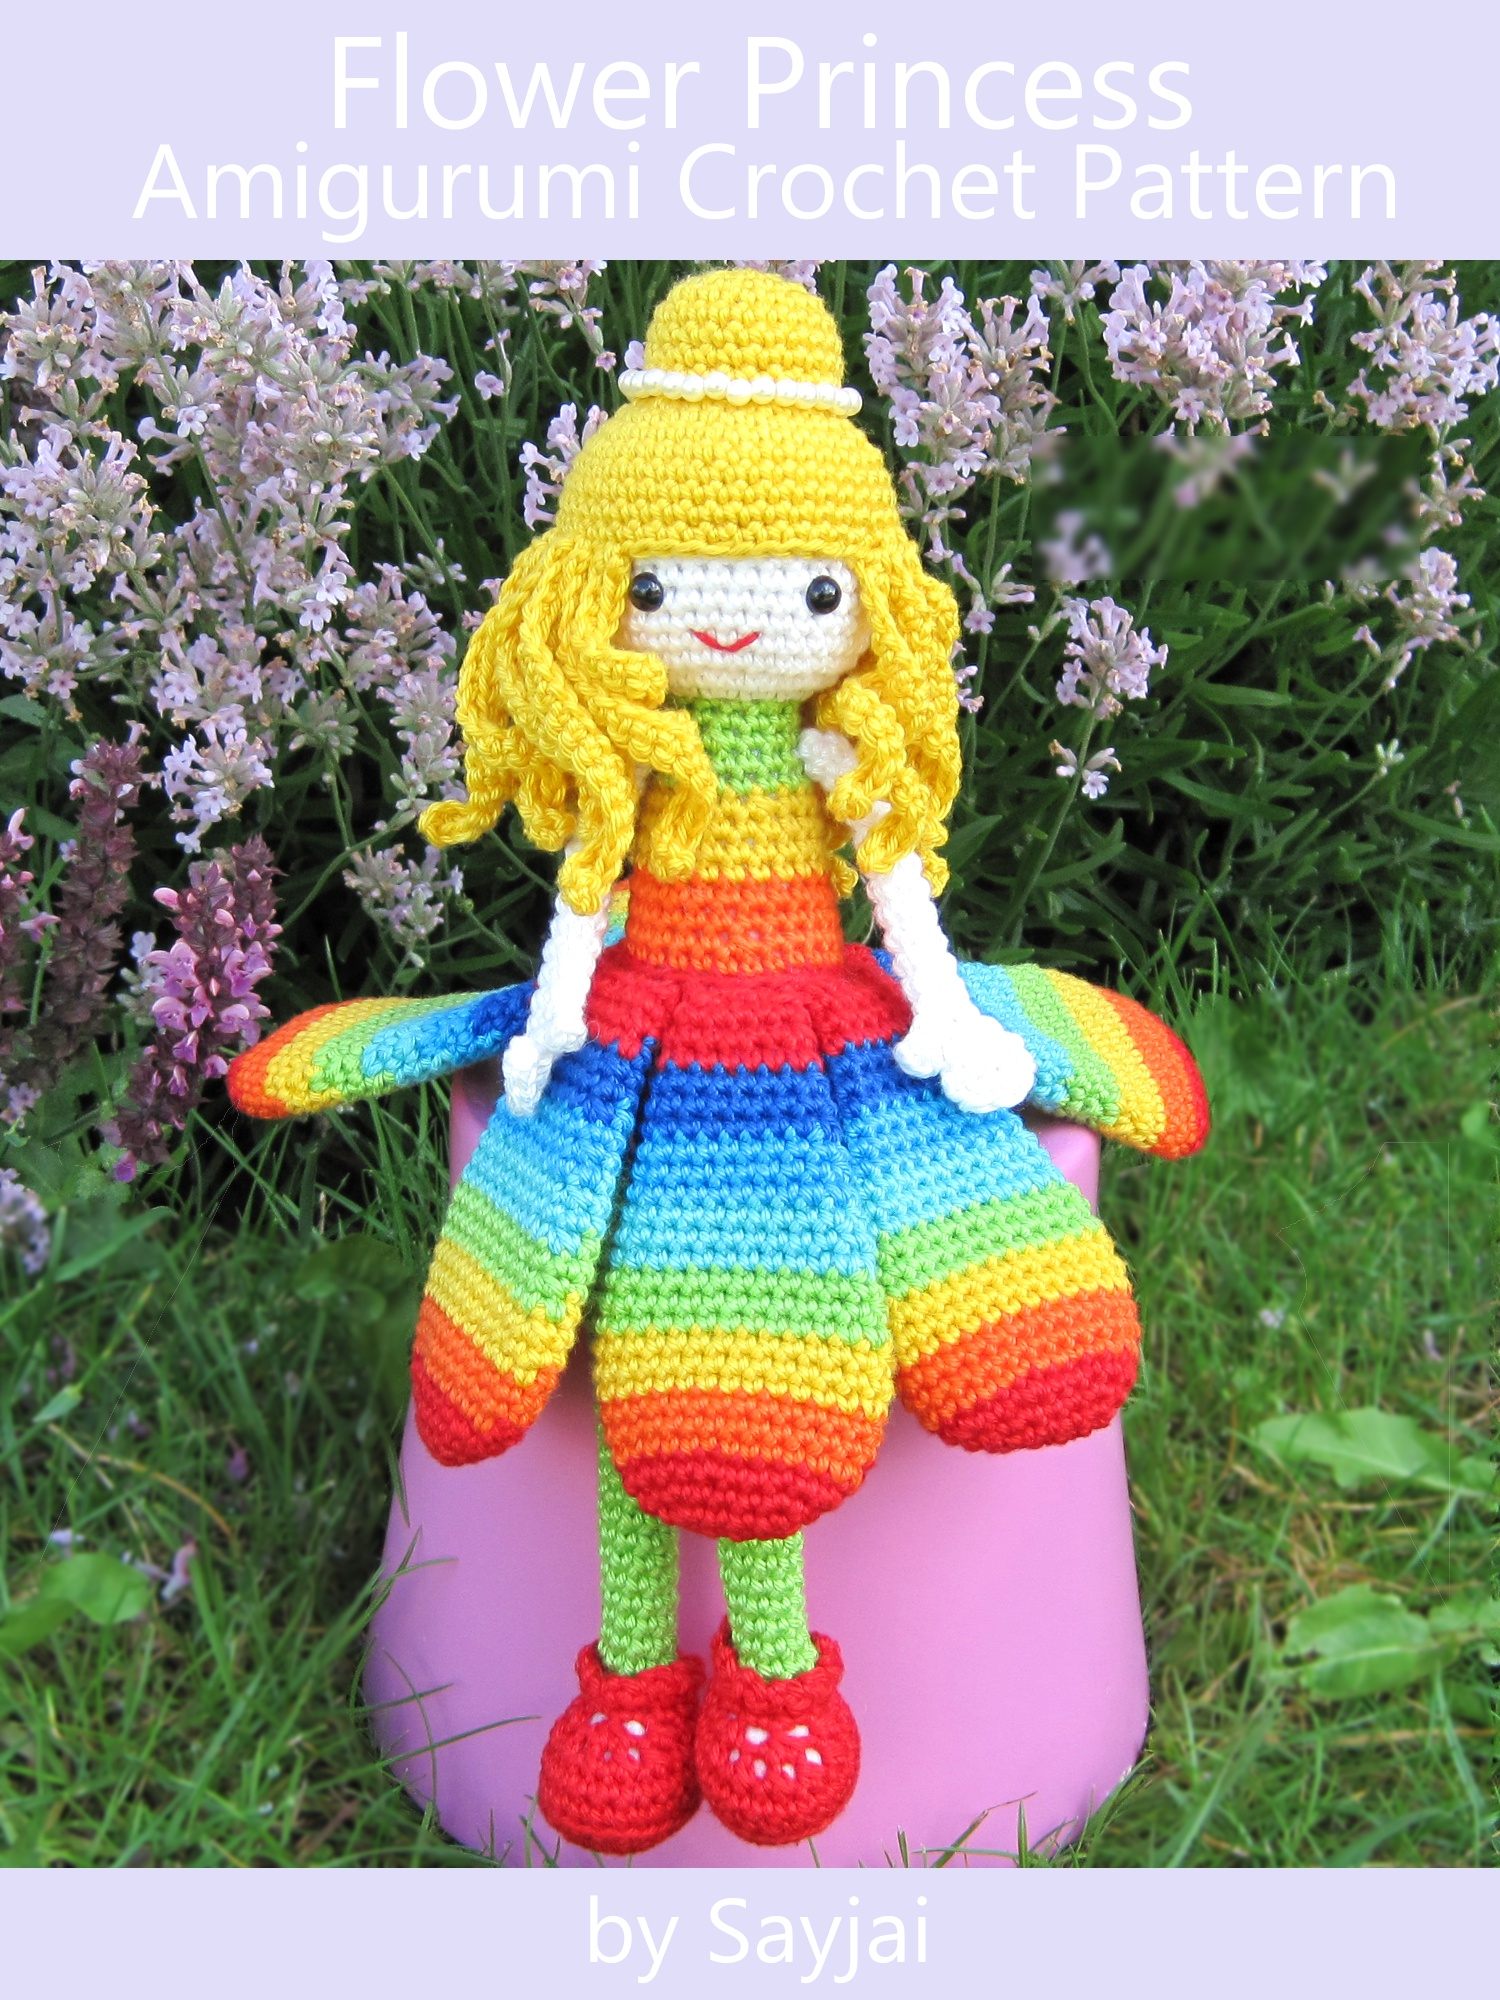 Smashwords Flower Princess Amigurumi Crochet Pattern a ...